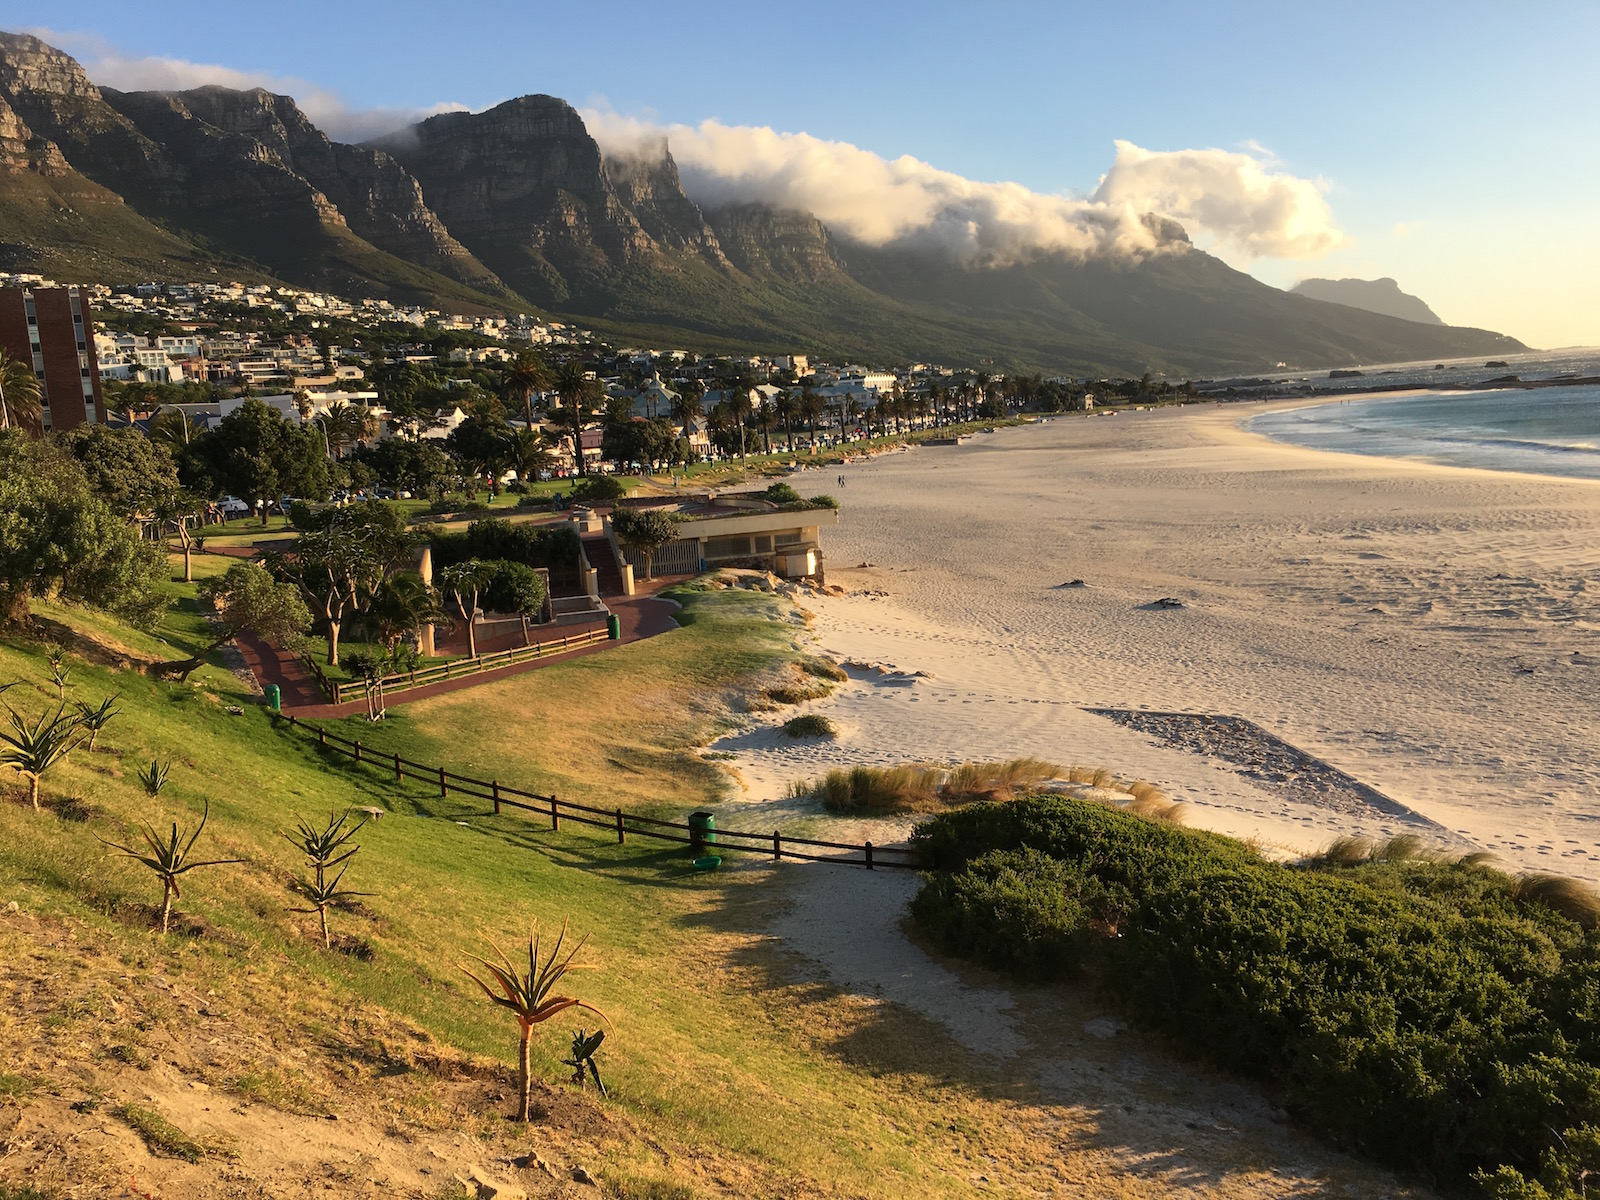 Catching an Uber to Camps Bay for dinner and to enjoy the sunset.